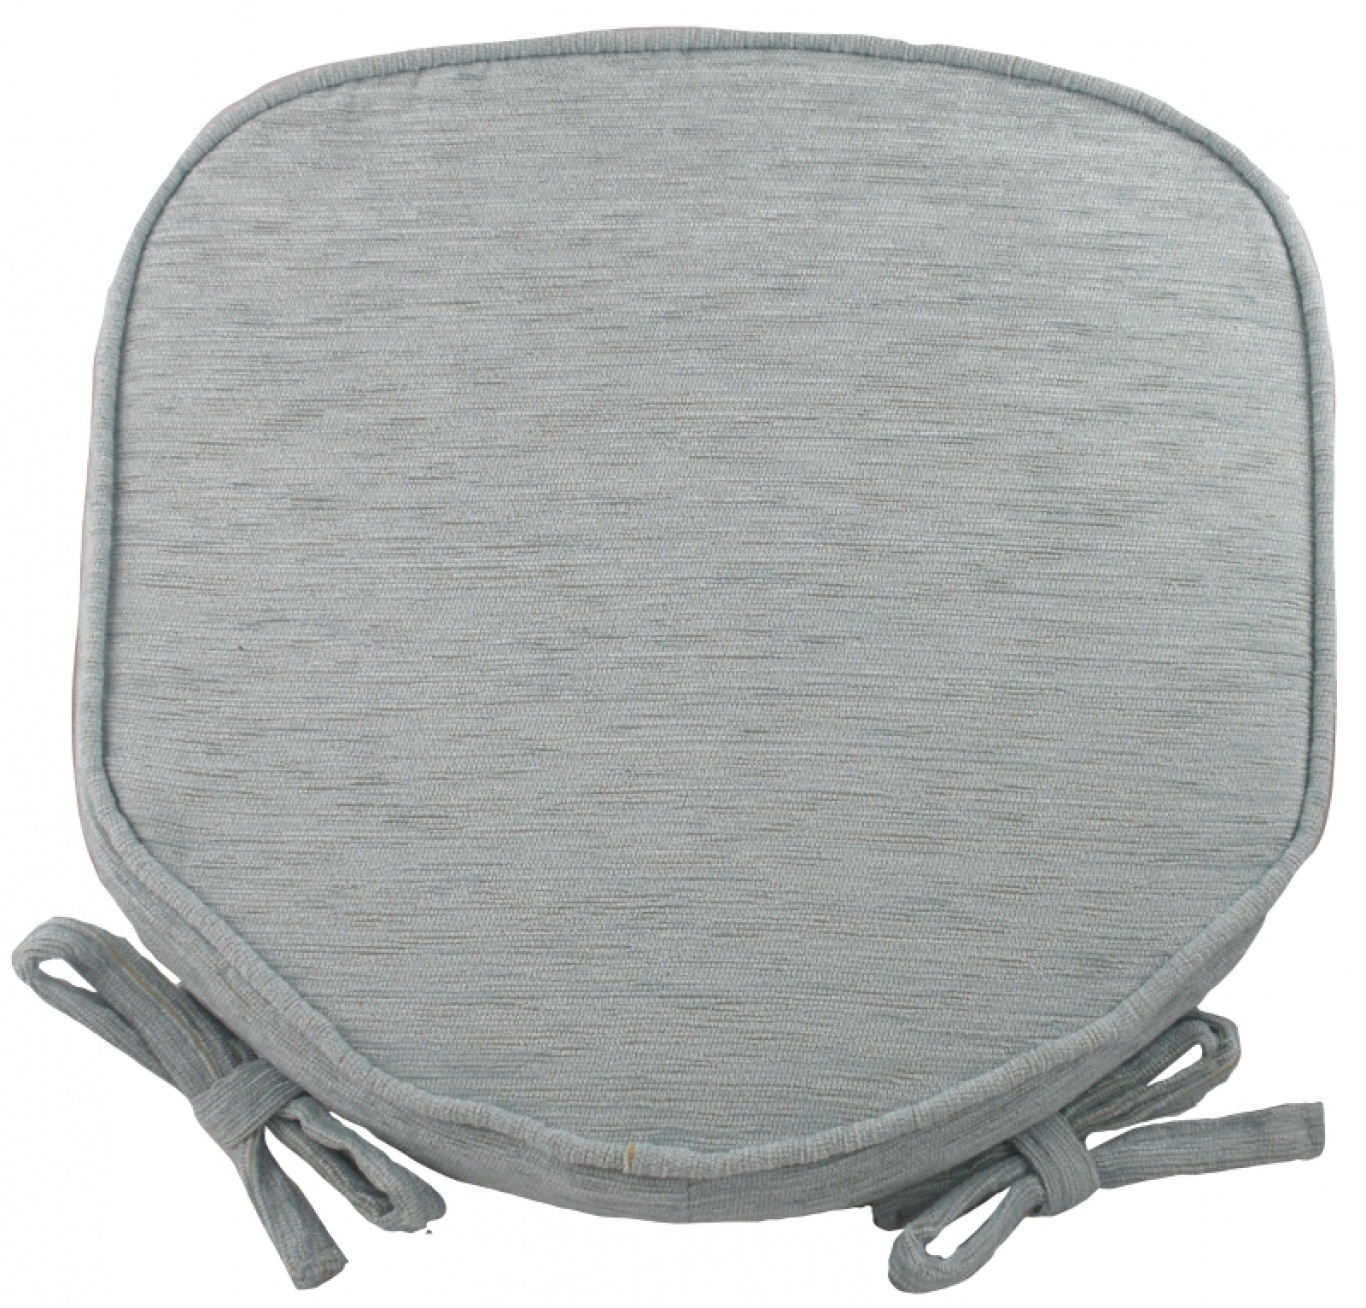 Image of Savannah Walled Seat Pads Duck Egg